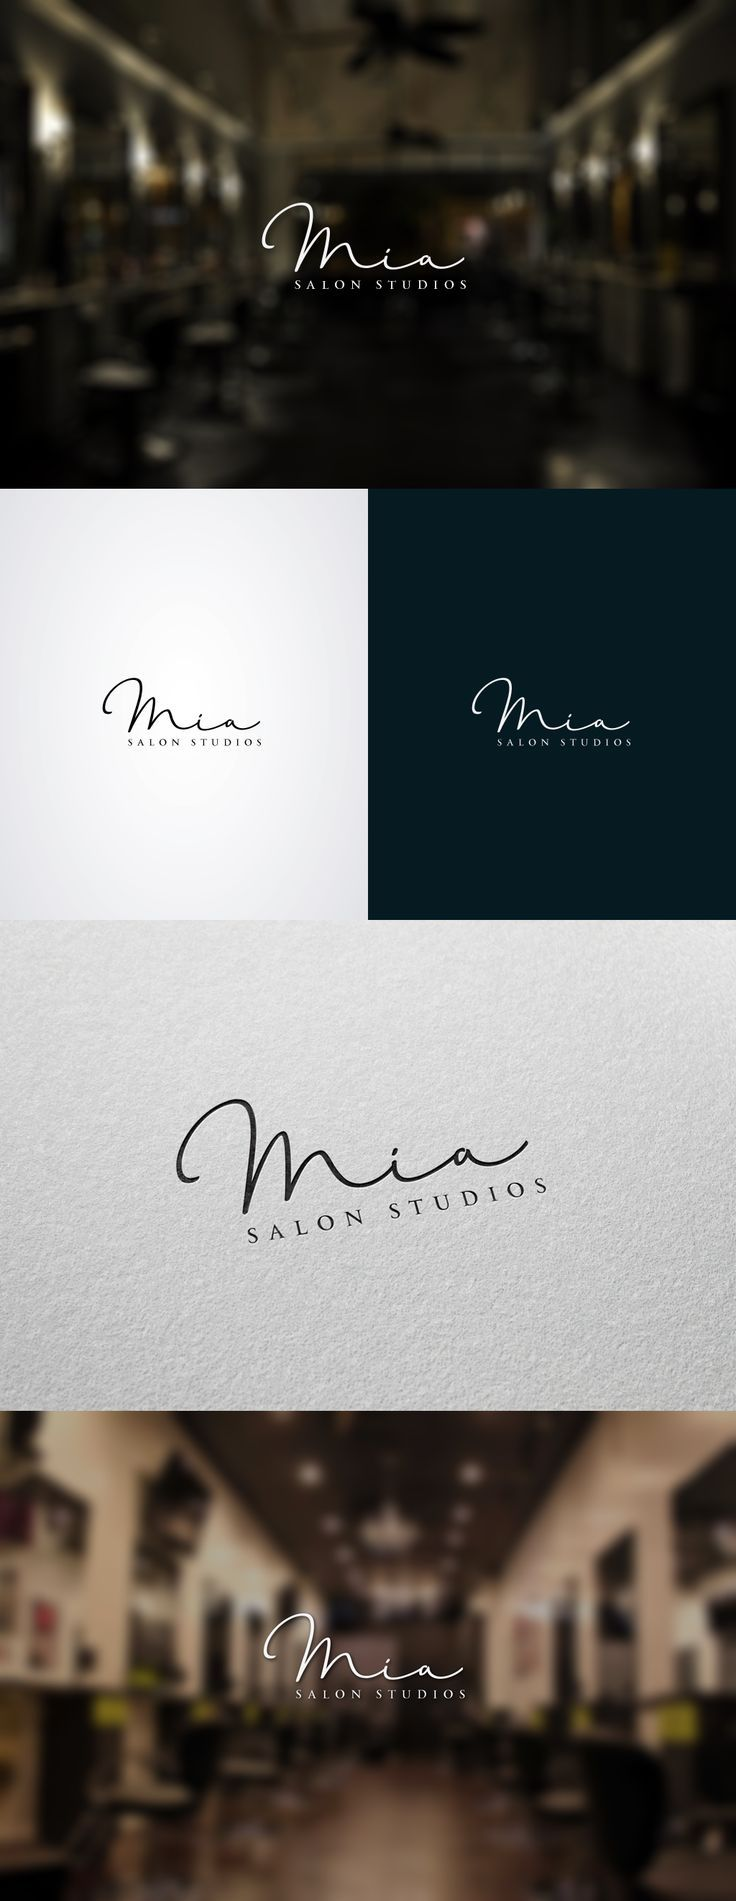 awesome New salon studios startup needs a logo! | 99designs by http://www.newfashiontrends.top/fashion-logo-design/new-salon-studios-startup-needs-a-logo-99designs/